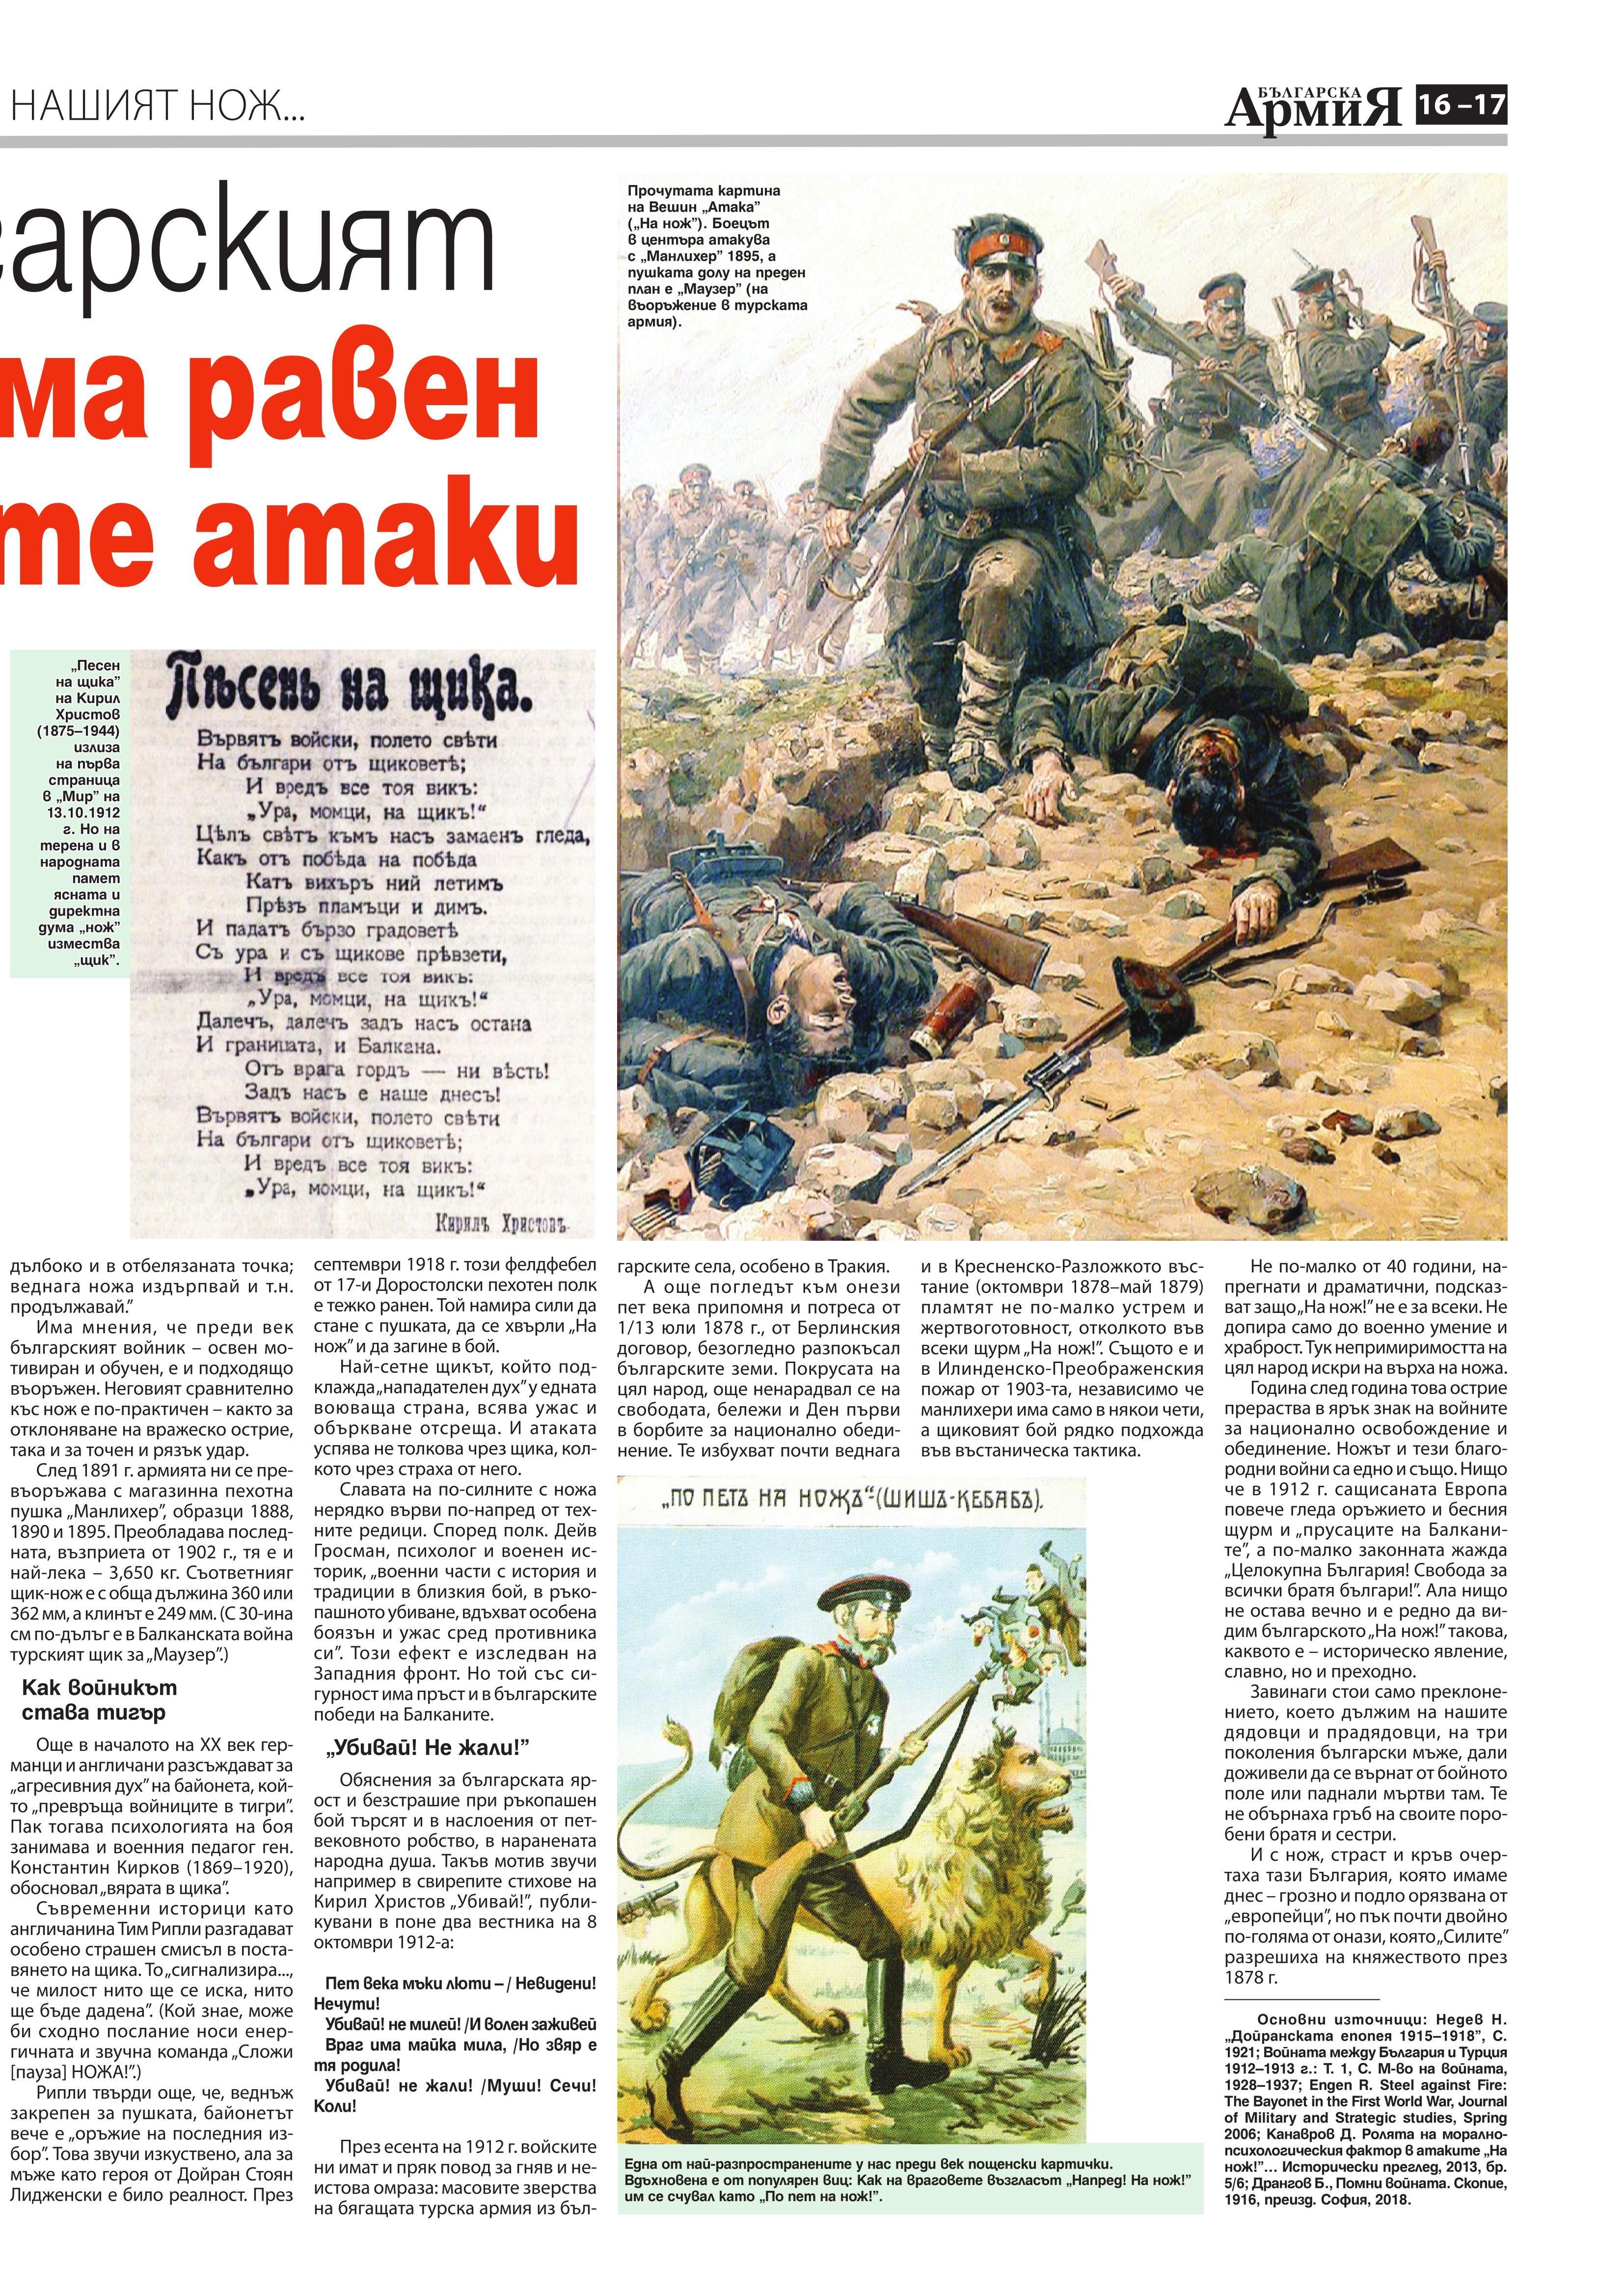 https://www.armymedia.bg/wp-content/uploads/2015/06/17.page1_-126.jpg